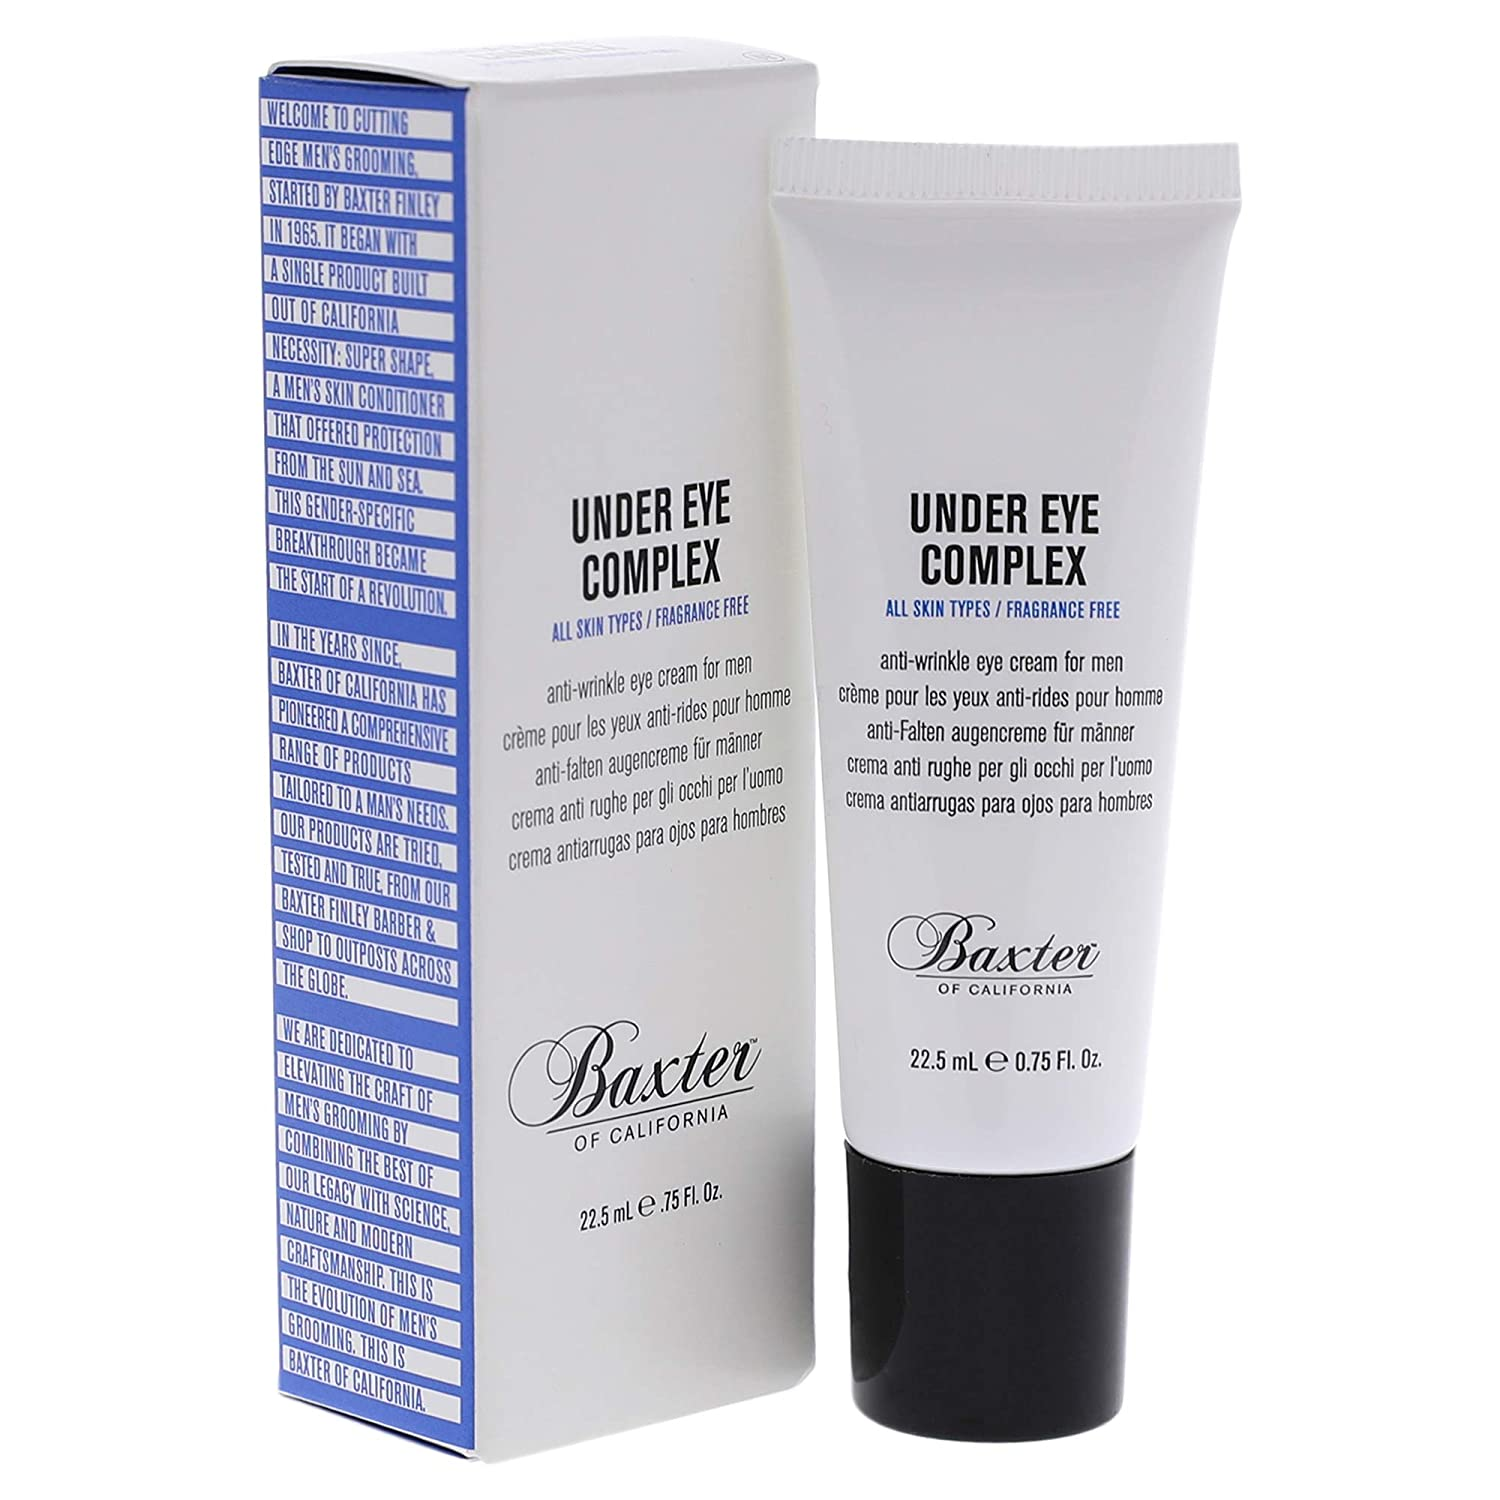 baxter of california under eye cream for men